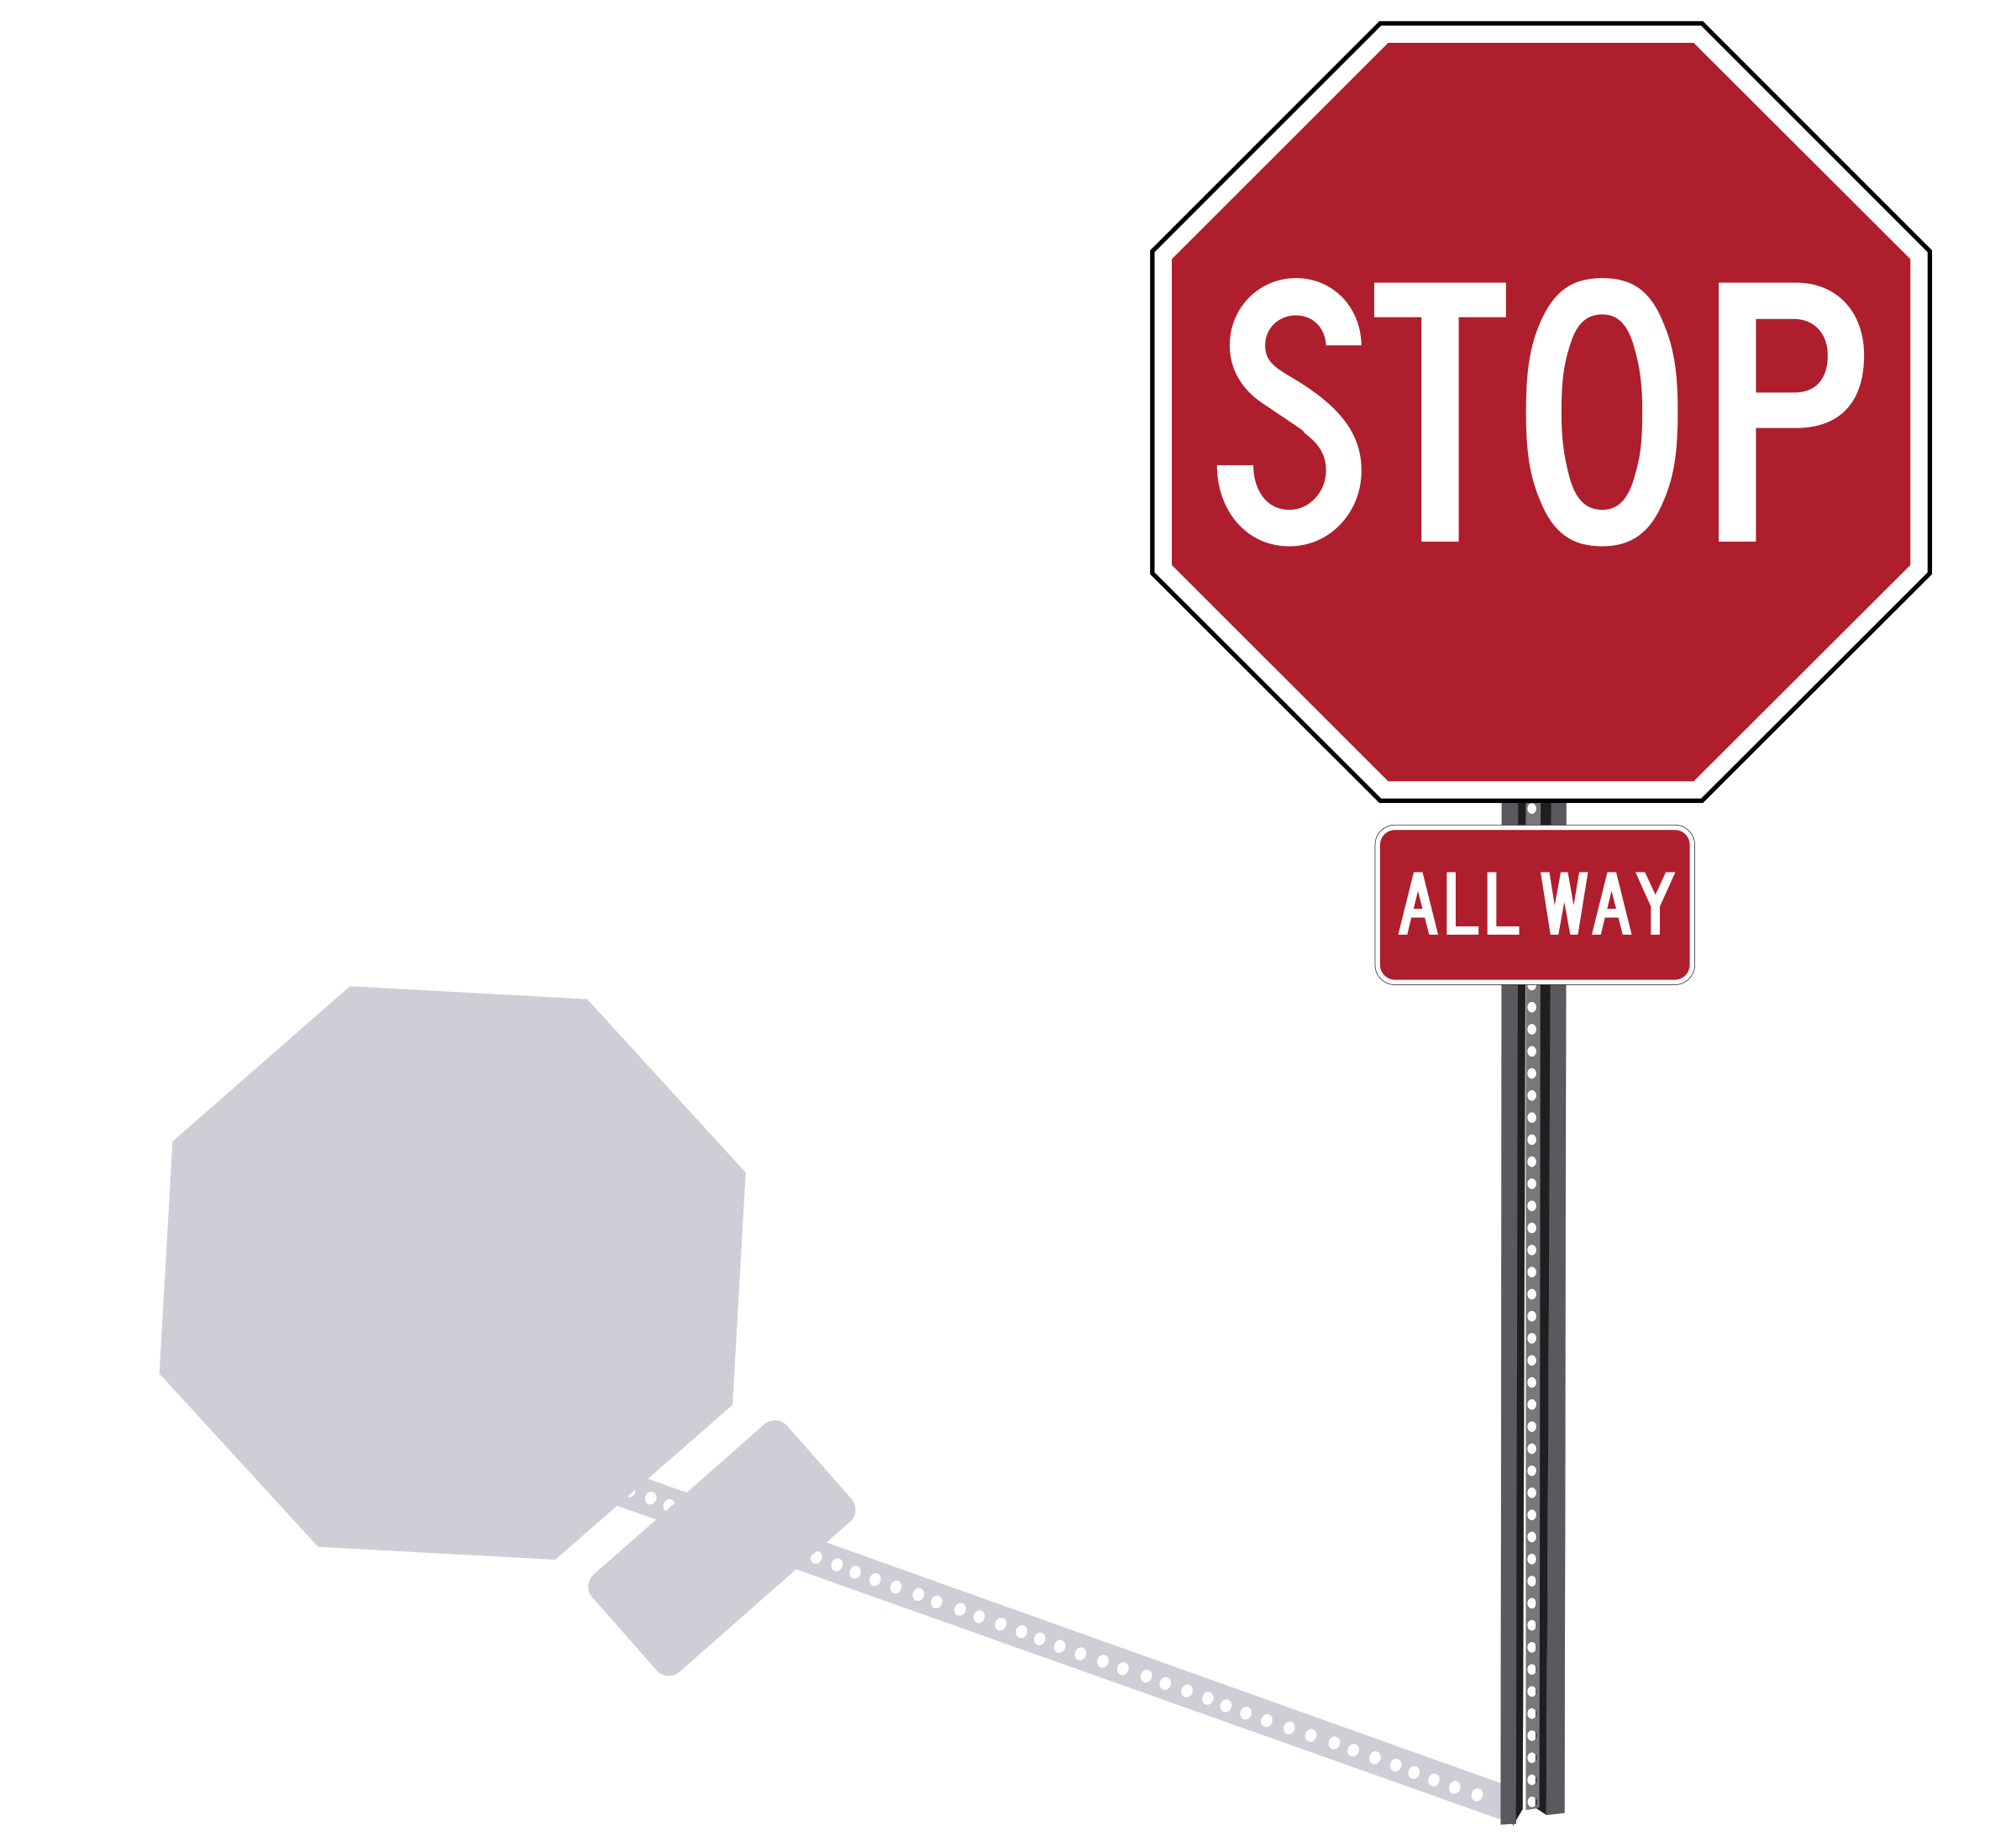 Stop sign clip art png. On post icons free